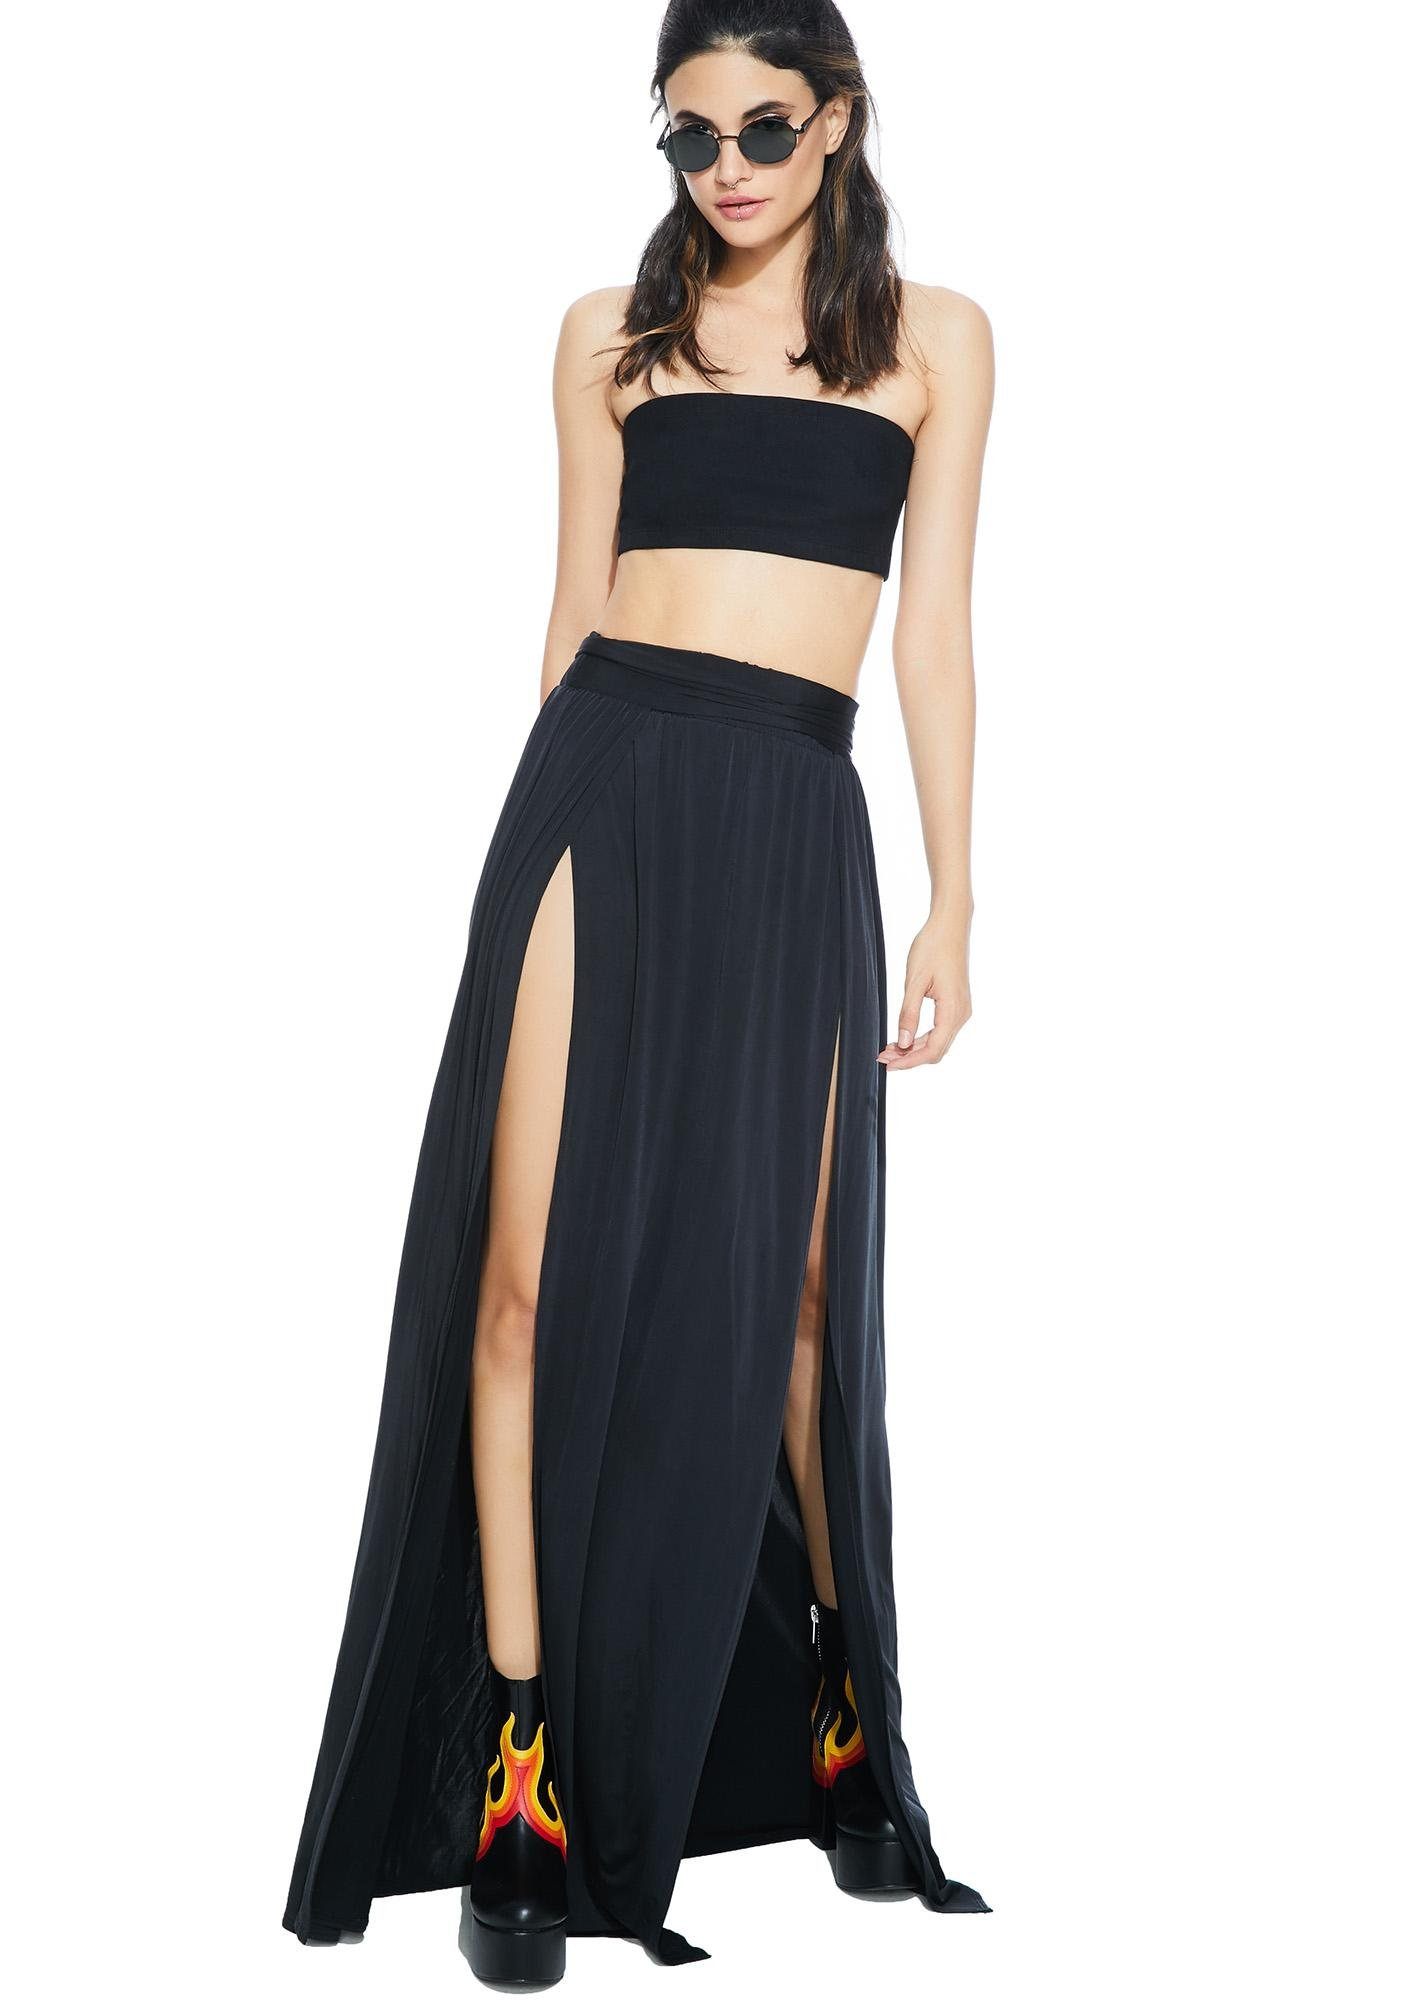 The One Colour High Waisted Maxi Skirt With Slits